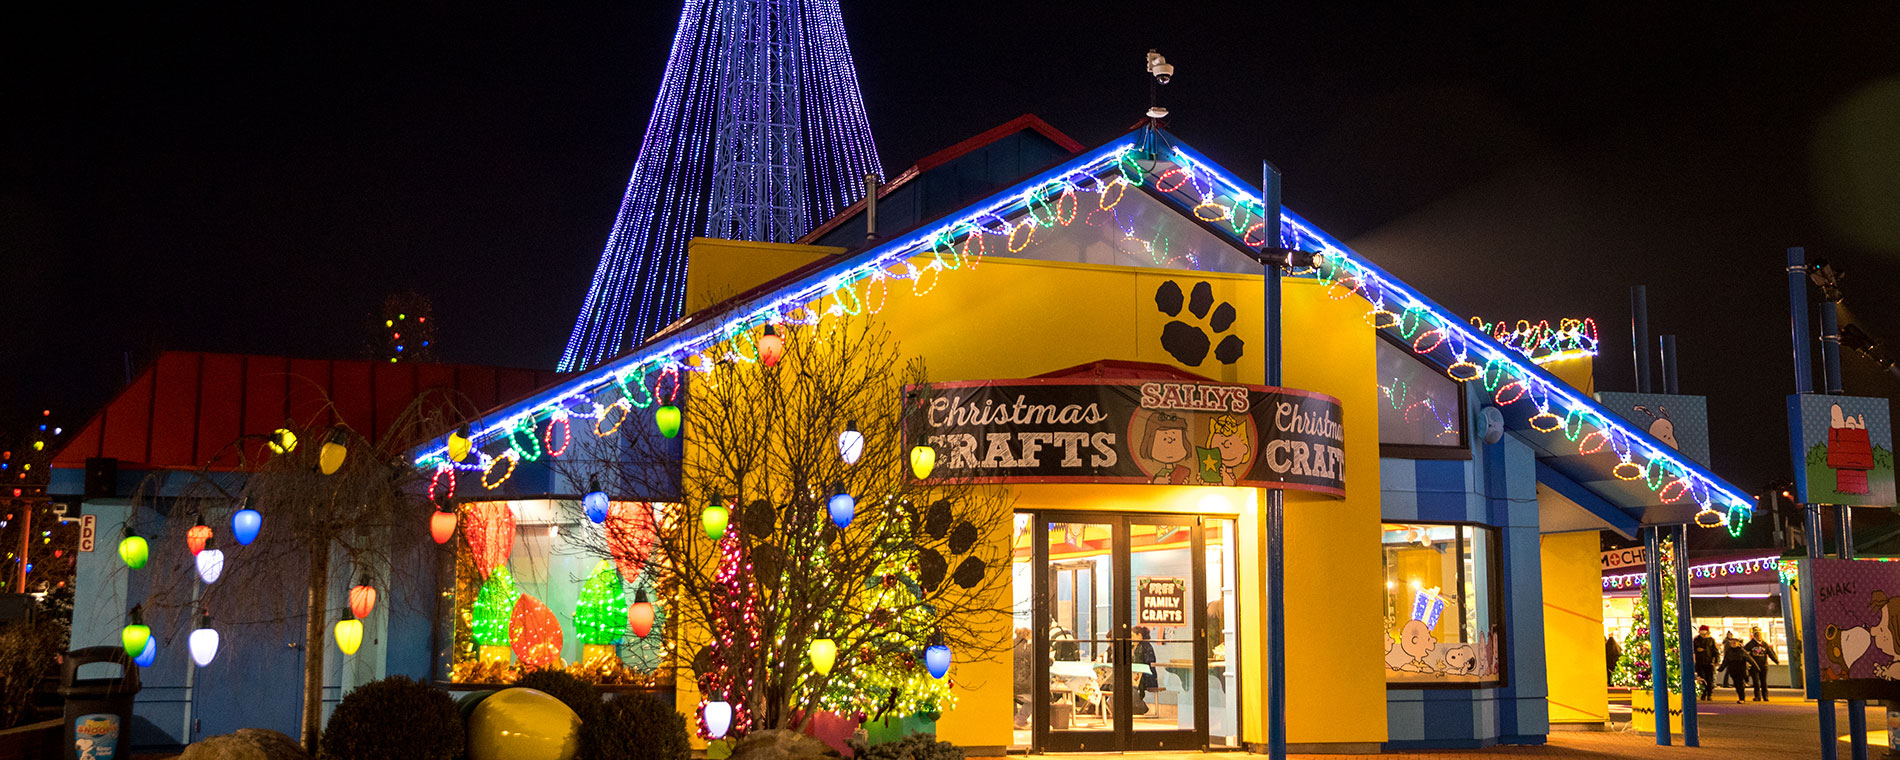 Sally\'s Christmas Crafts | WinterFest Attractions | Kings Island